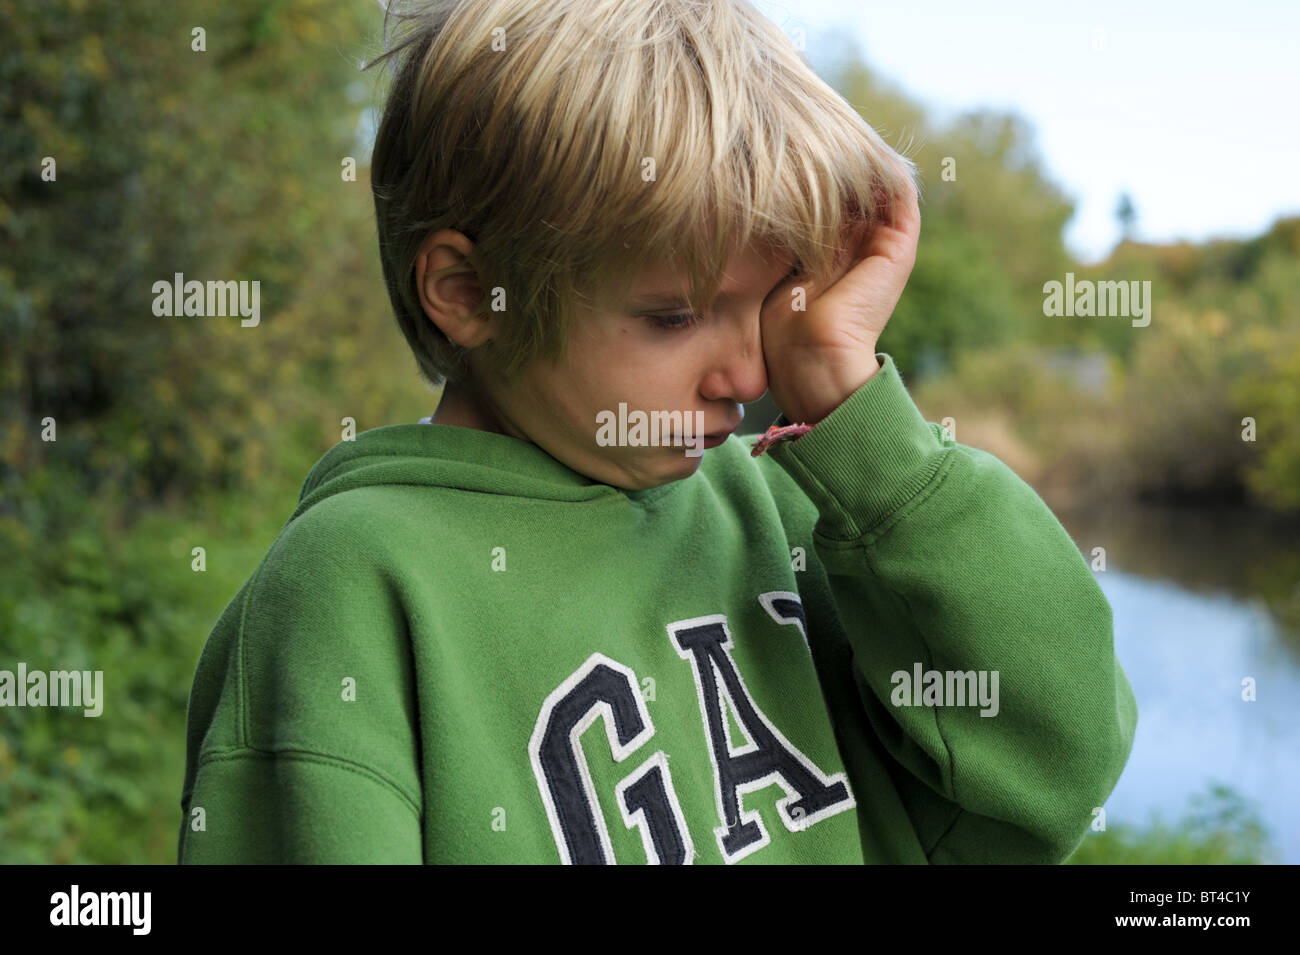 Sad, tired and tearful blond-haired little boy in a green top standing outside alone after being bullied and picked - Stock Image